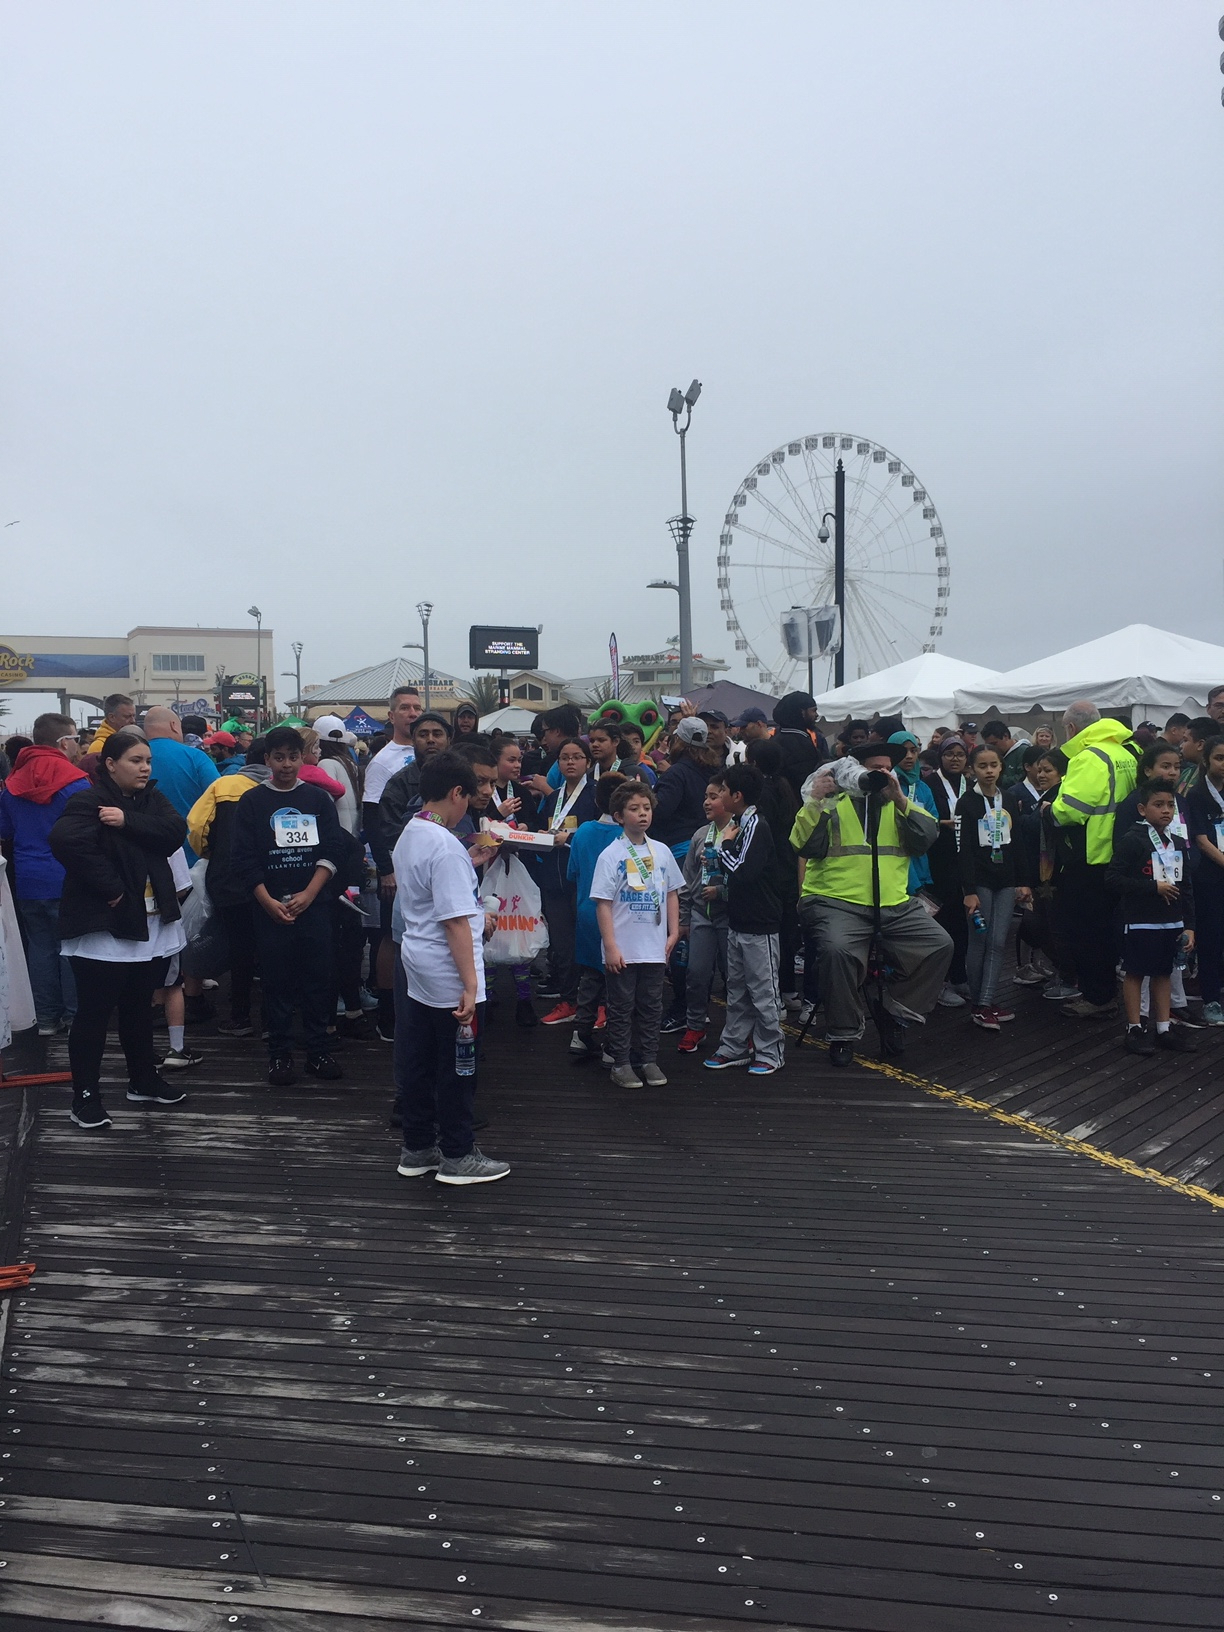 ACCEA Sponsors the Kids Fit Final Mile